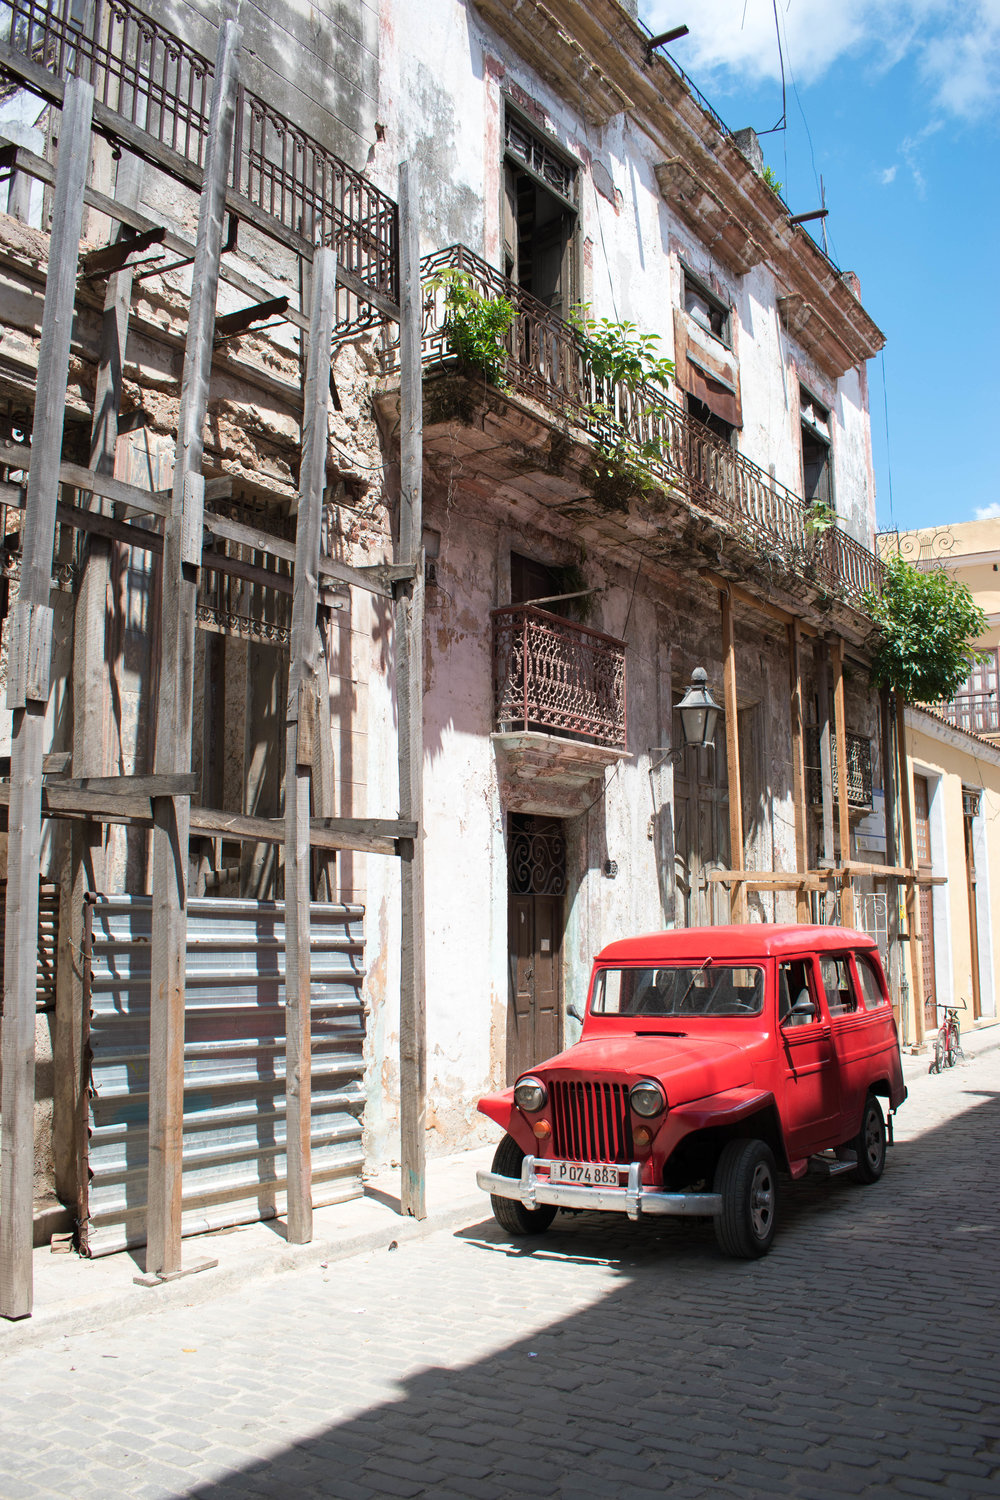 On The Outskirts of Old Havana, Some Buildings Require Attention, Cuba